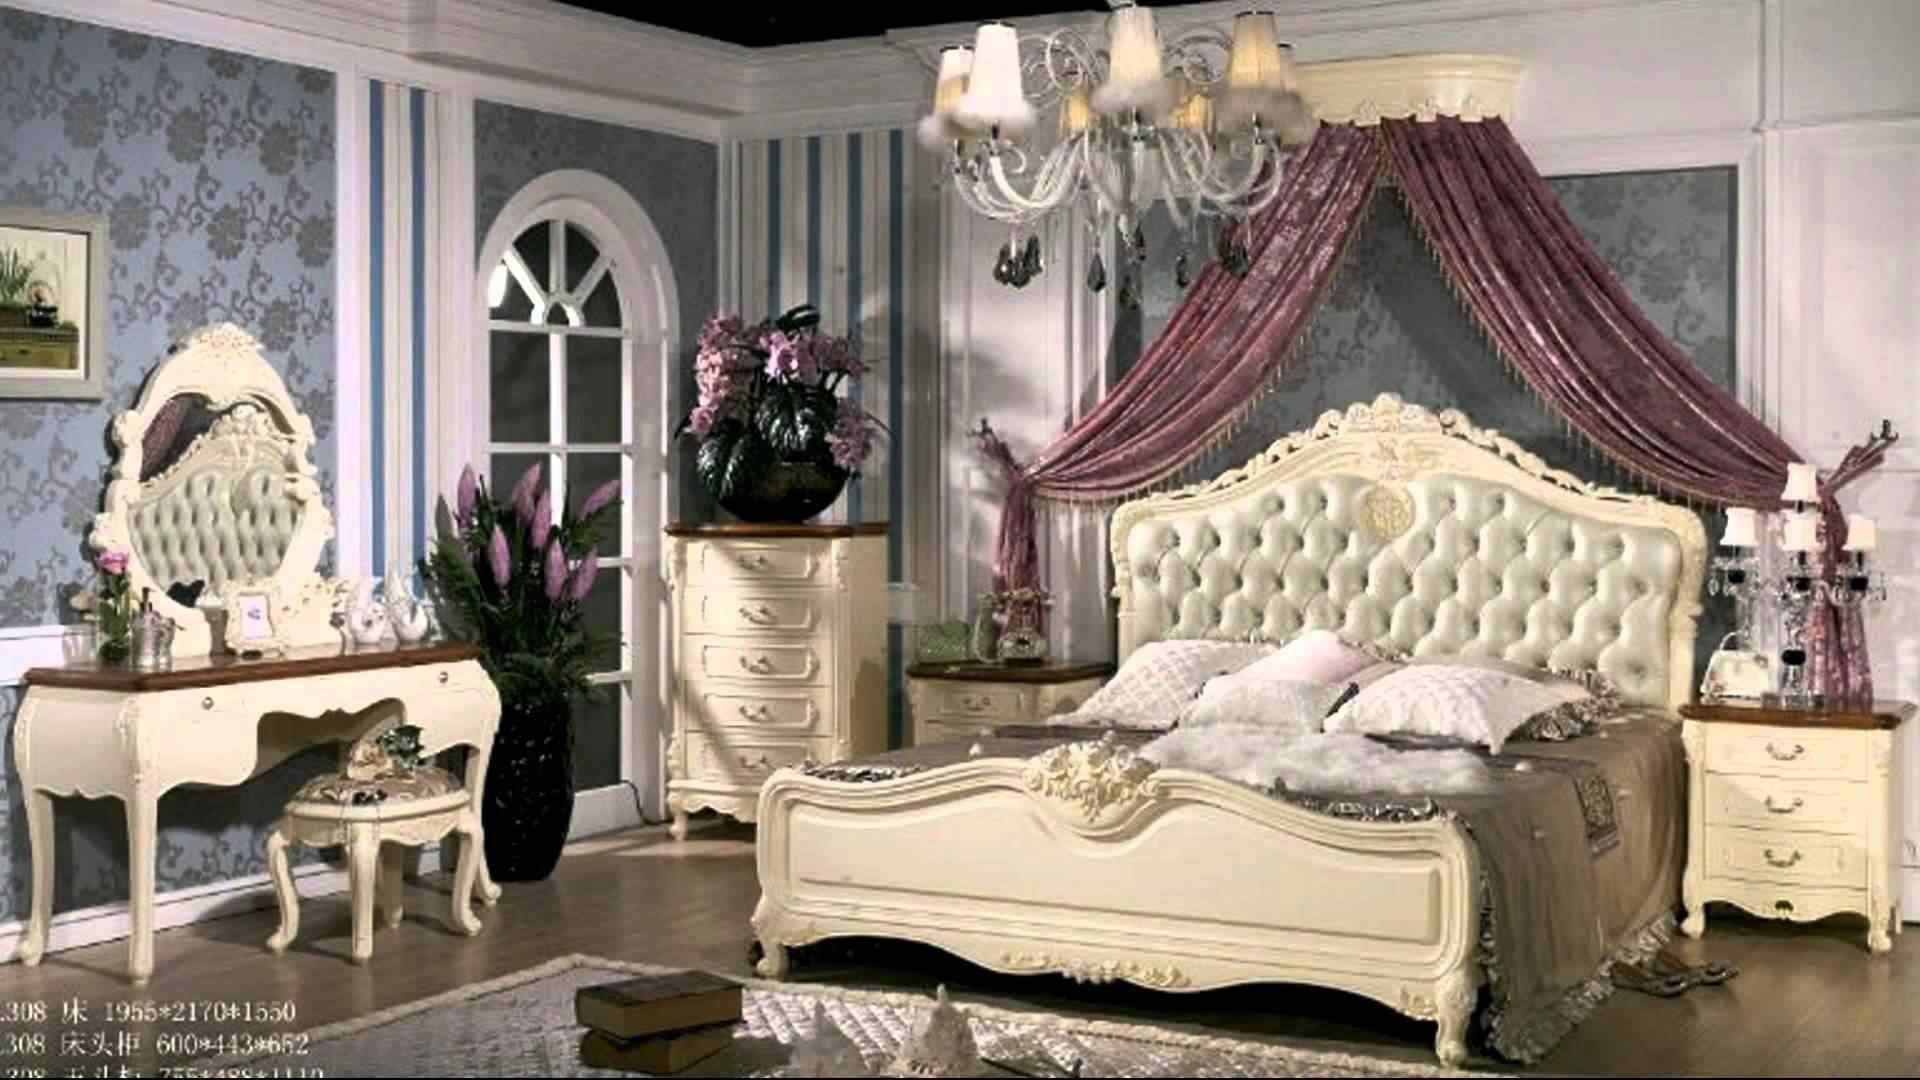 44 Awesome French Style Bedroom Decor Ideas - ROUNDECOR